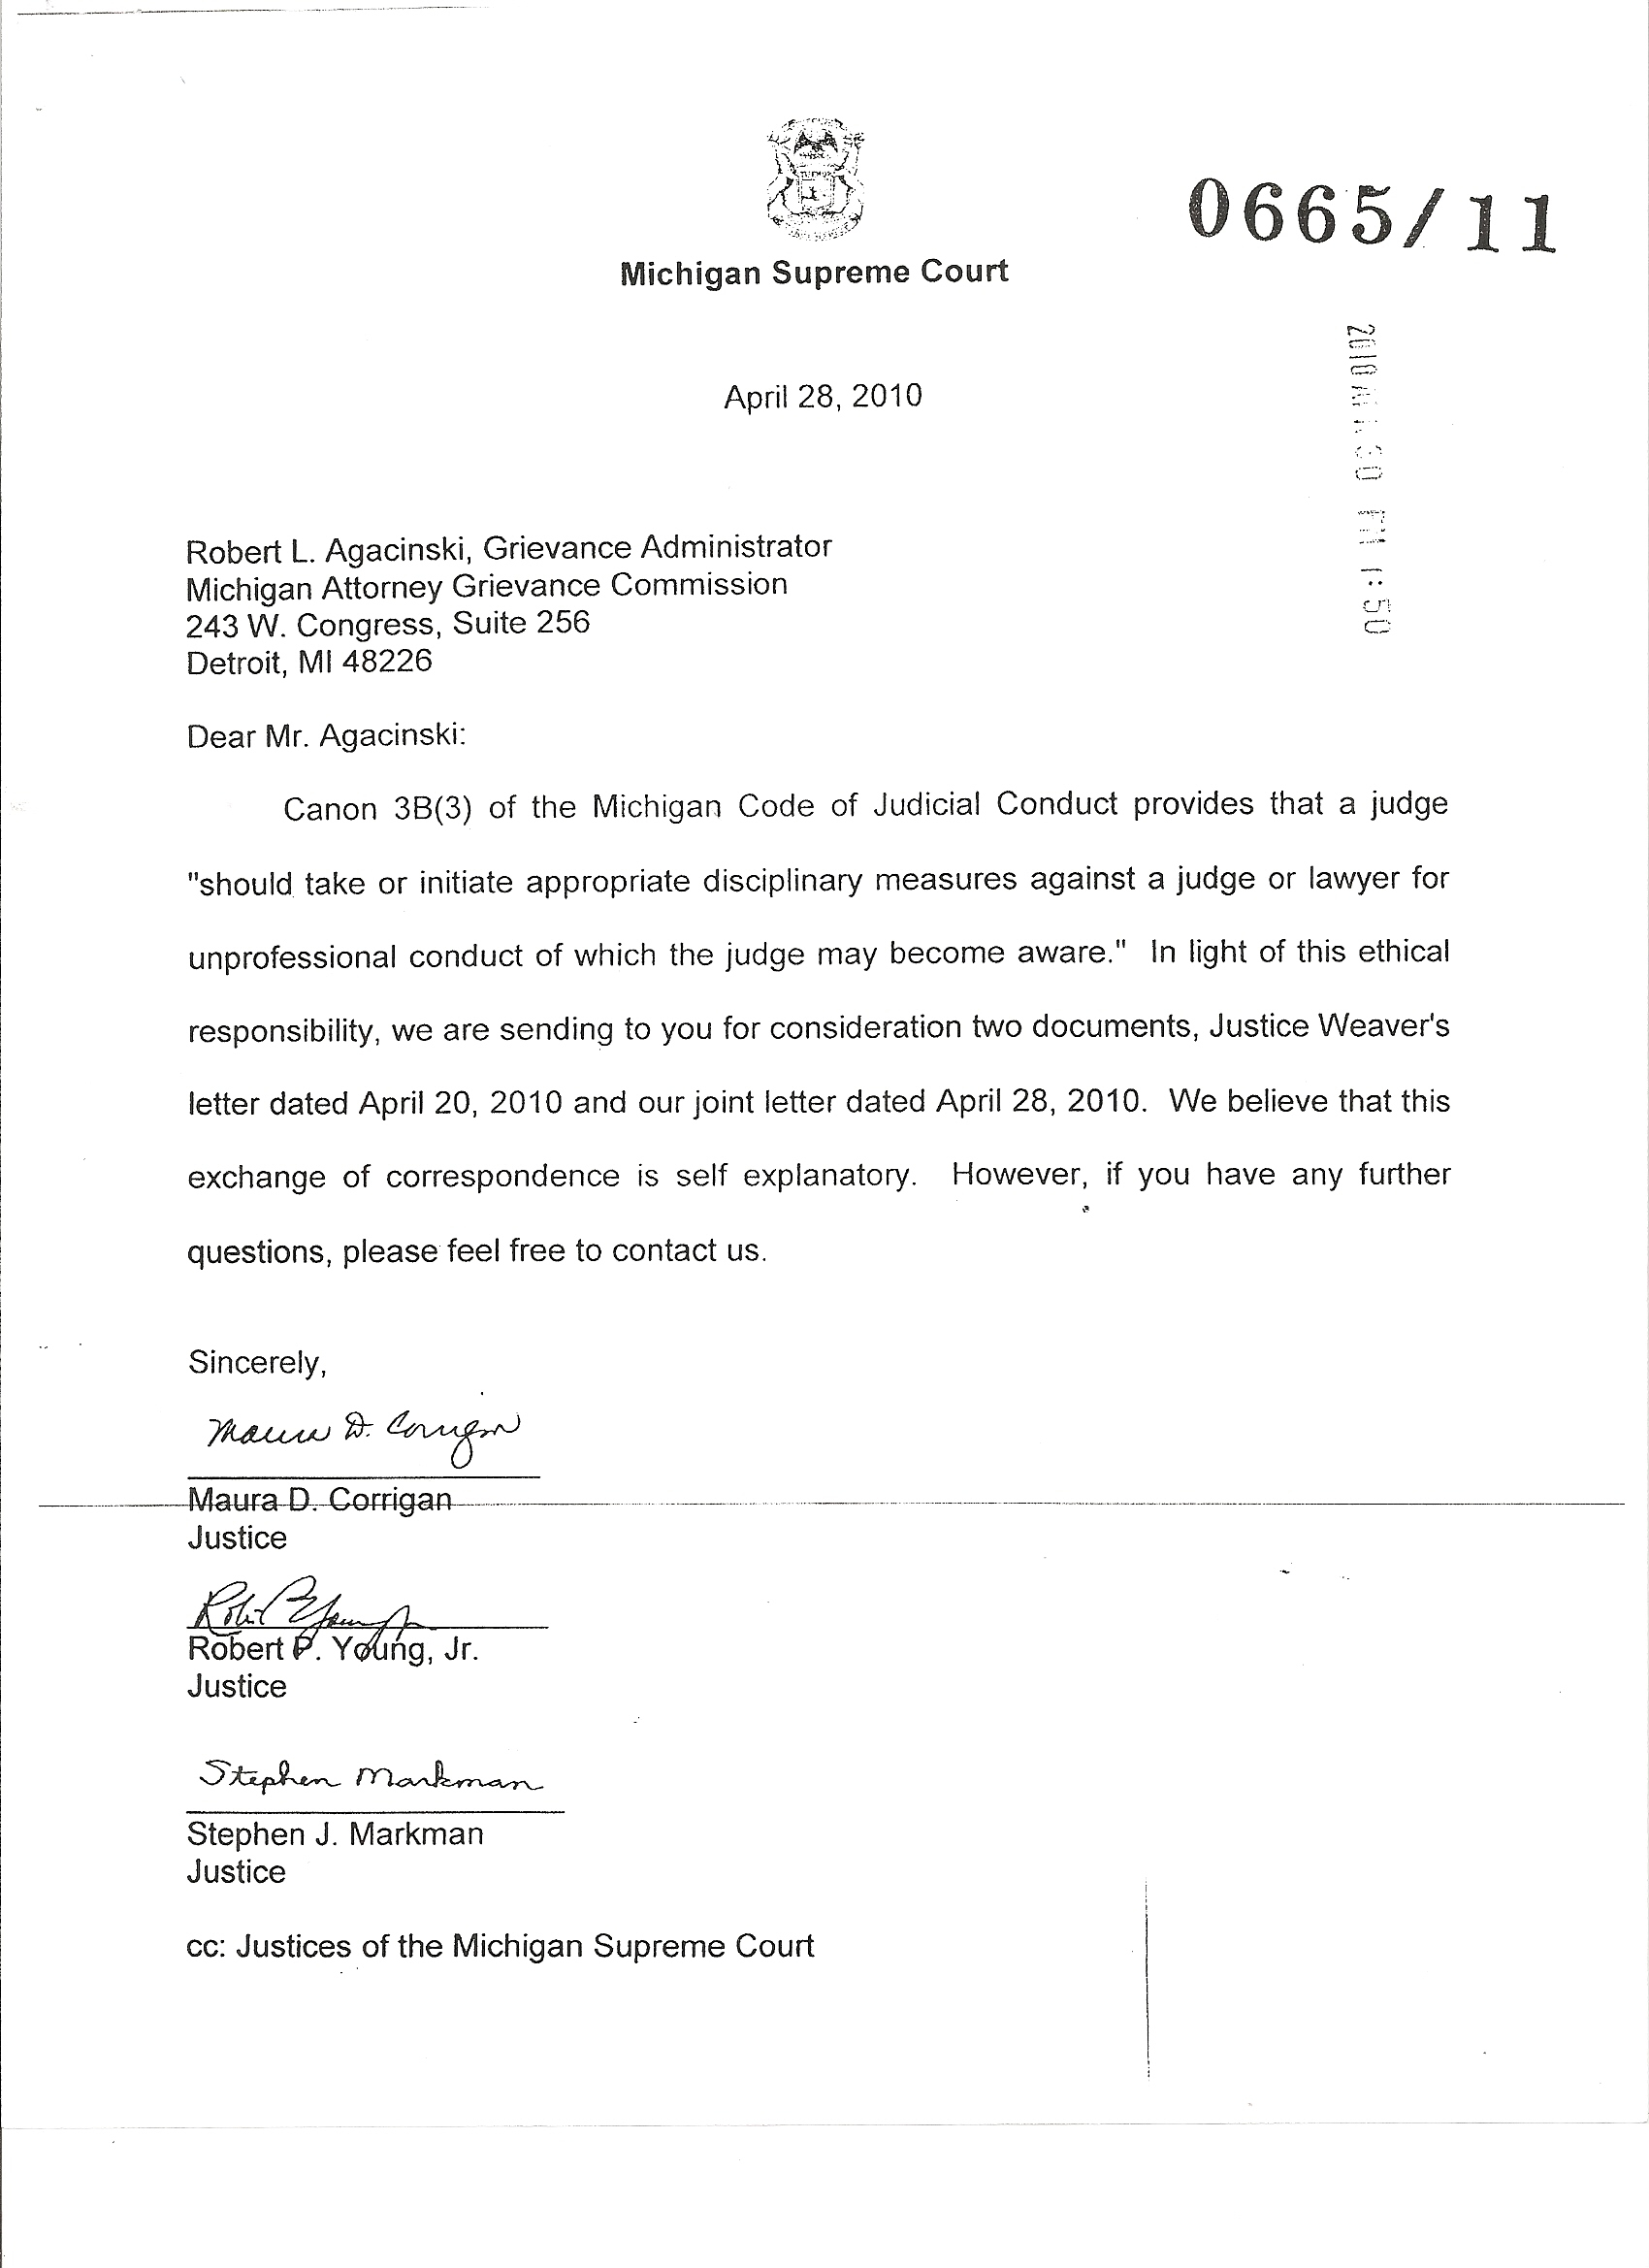 Sample Complaint Letter To Principal About Cyber Bullying April 5 2011 — What Dat Incompetence Or Malice Both